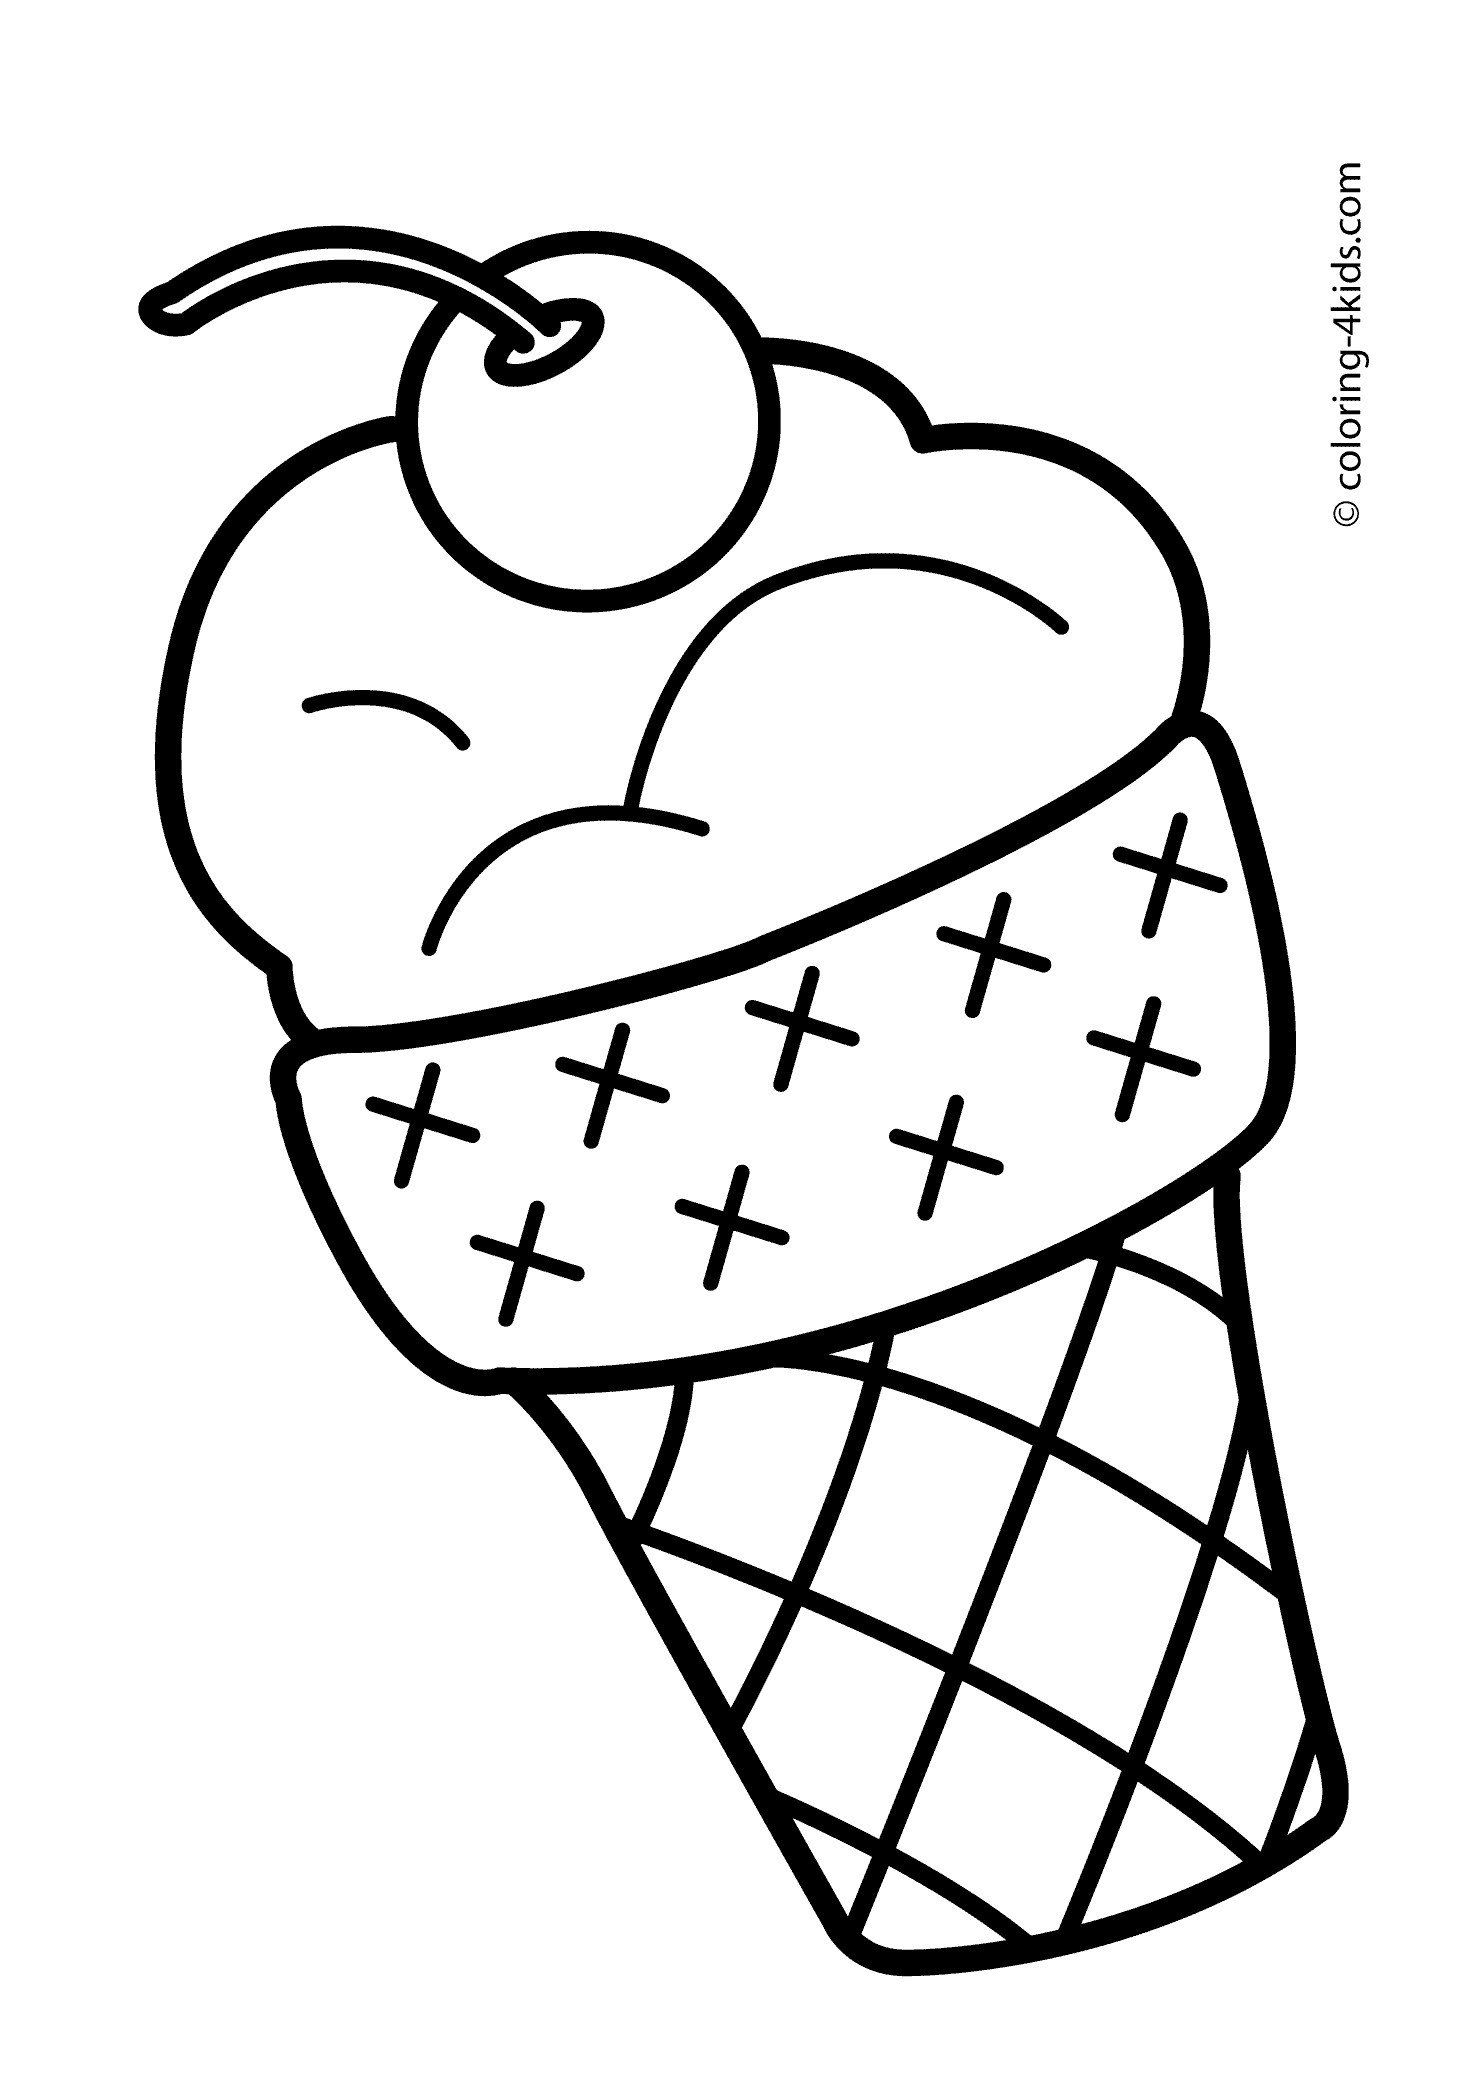 Ice Cream Coloring Pages Unique Ice Cream Cone Coloring Page Cool Coloring Pages Summer Coloring Pages Printable Coloring Book